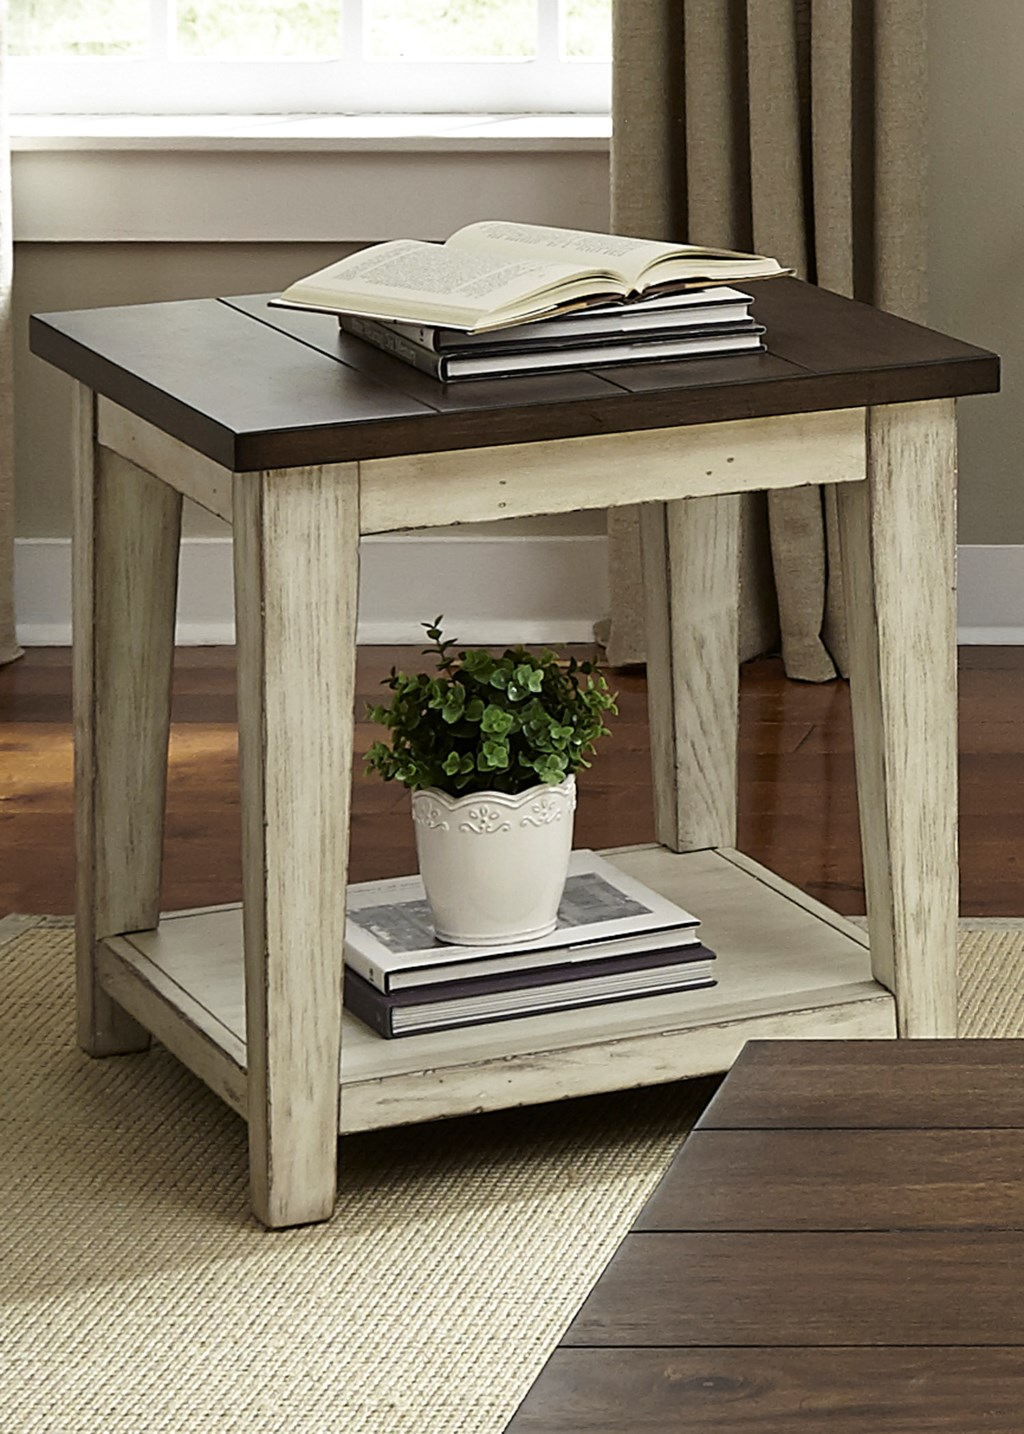 Liberty furniture lancasterrustic end table